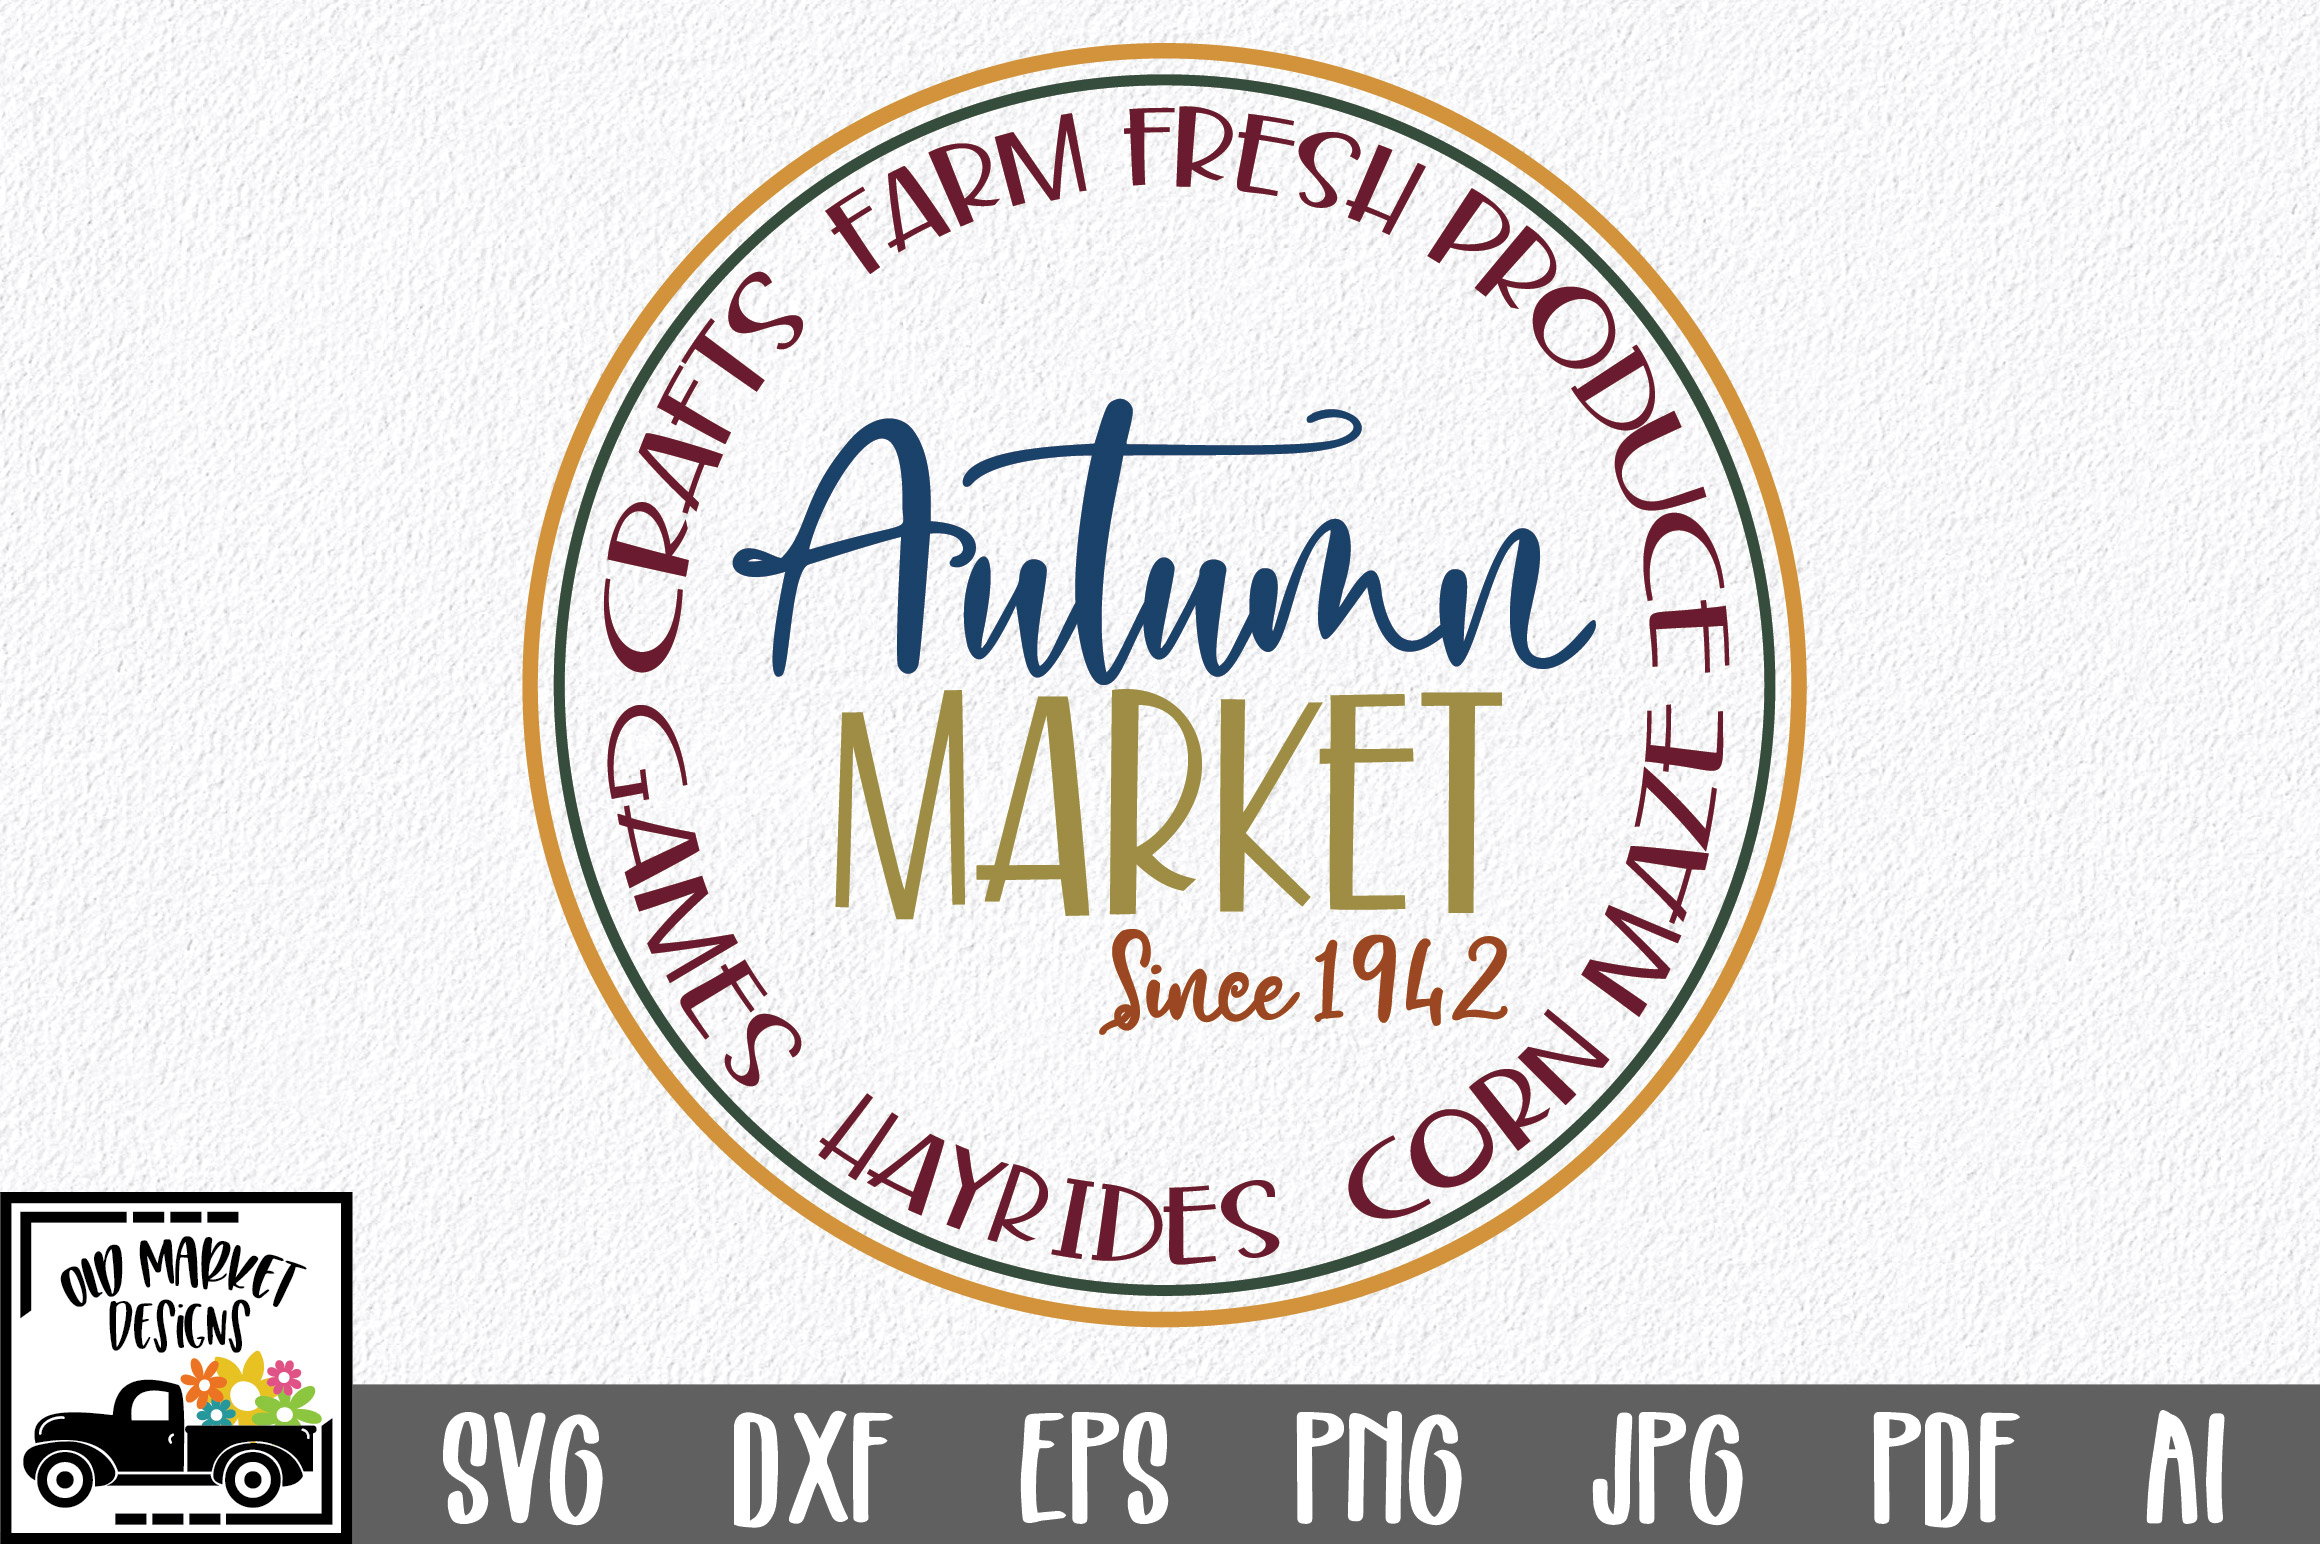 Download Free Autumn Market Graphic By Oldmarketdesigns Creative Fabrica for Cricut Explore, Silhouette and other cutting machines.